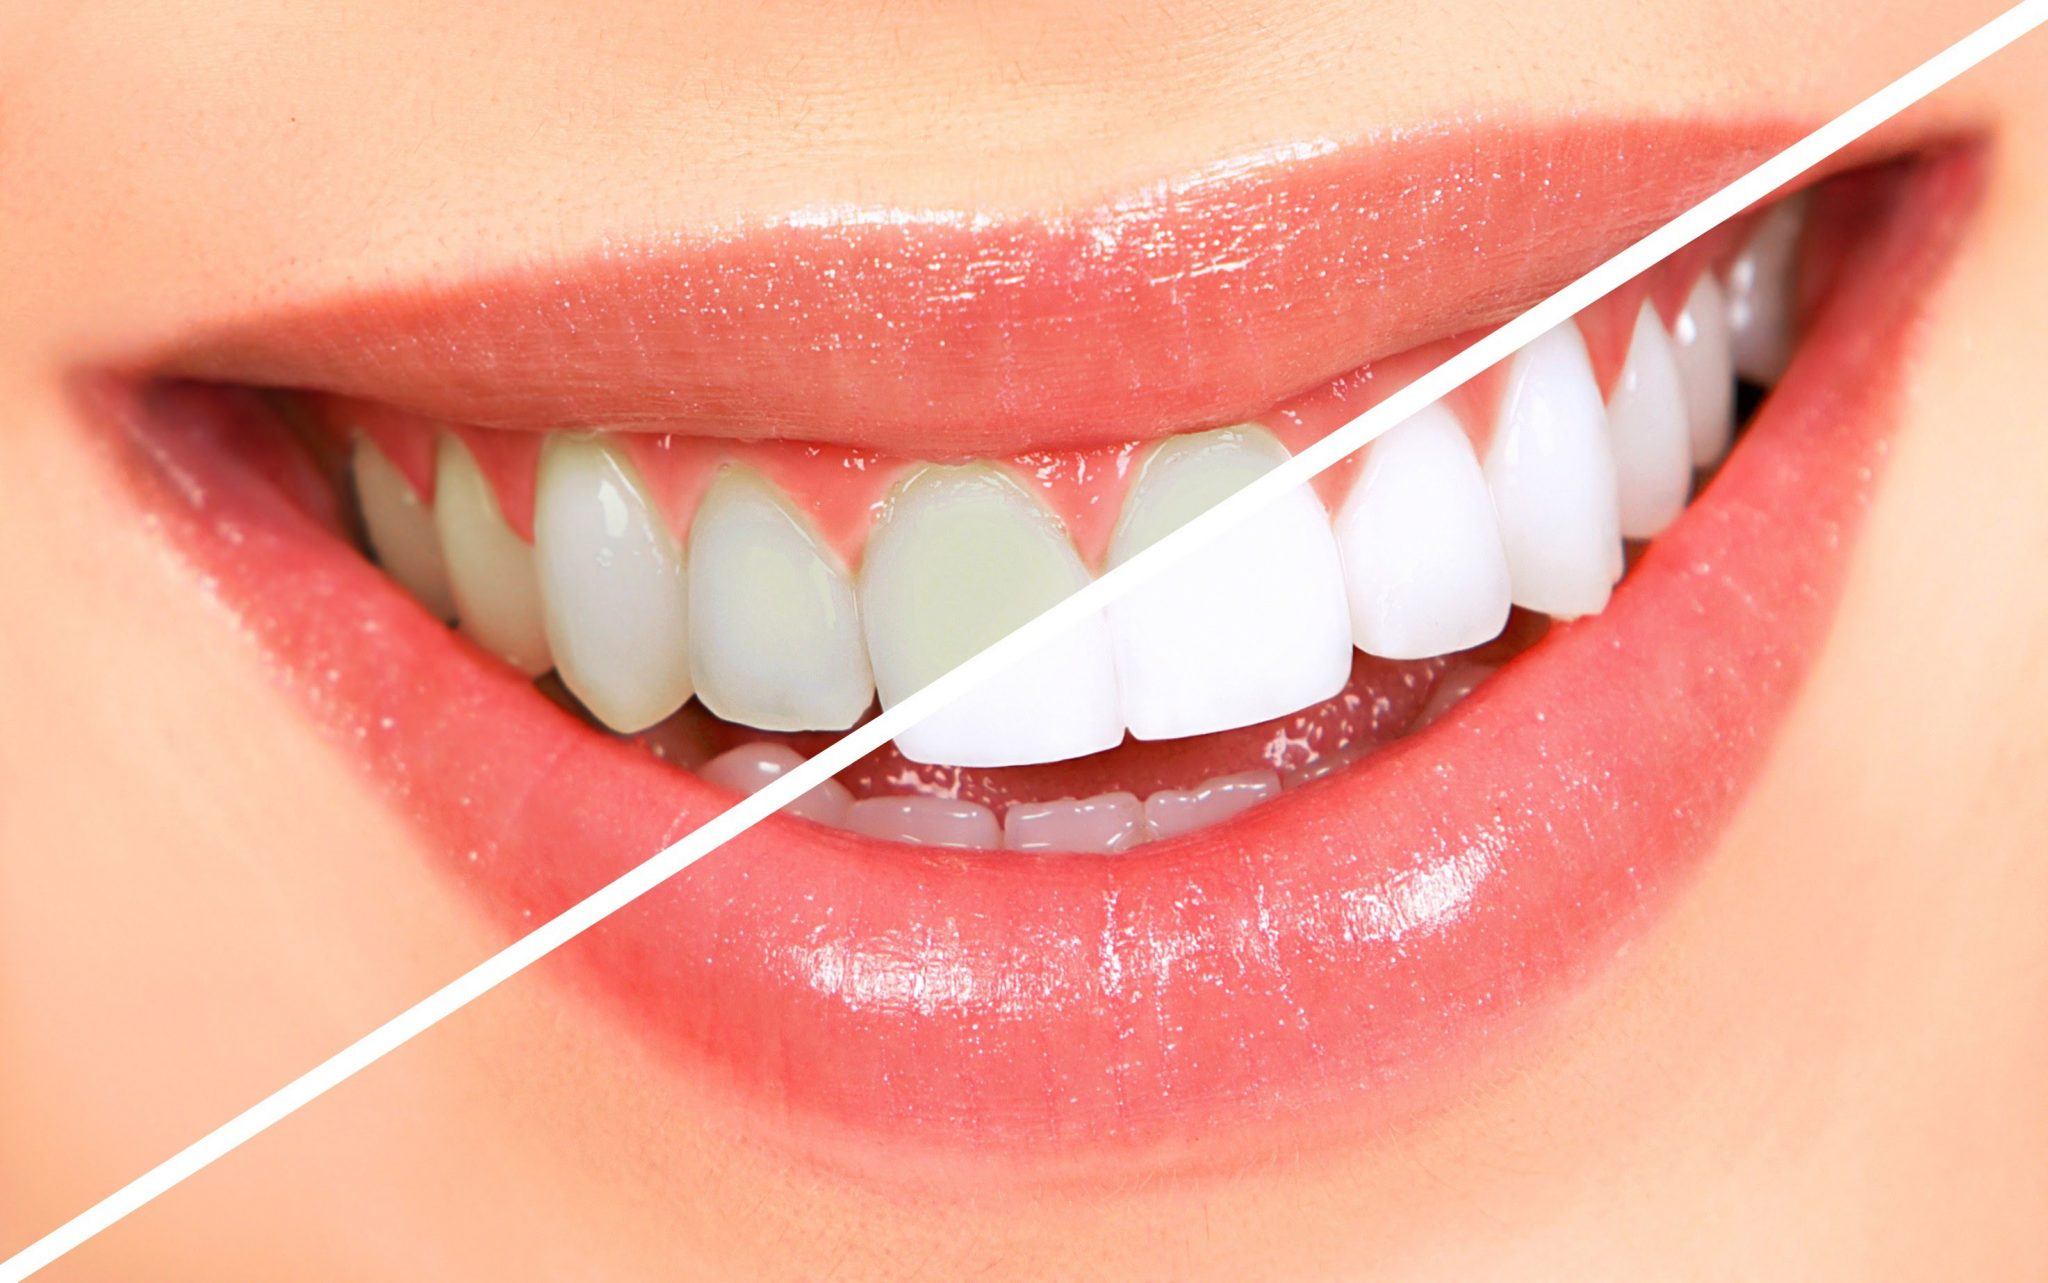 Dentist In Vicksburg Ms Teeth Whitening